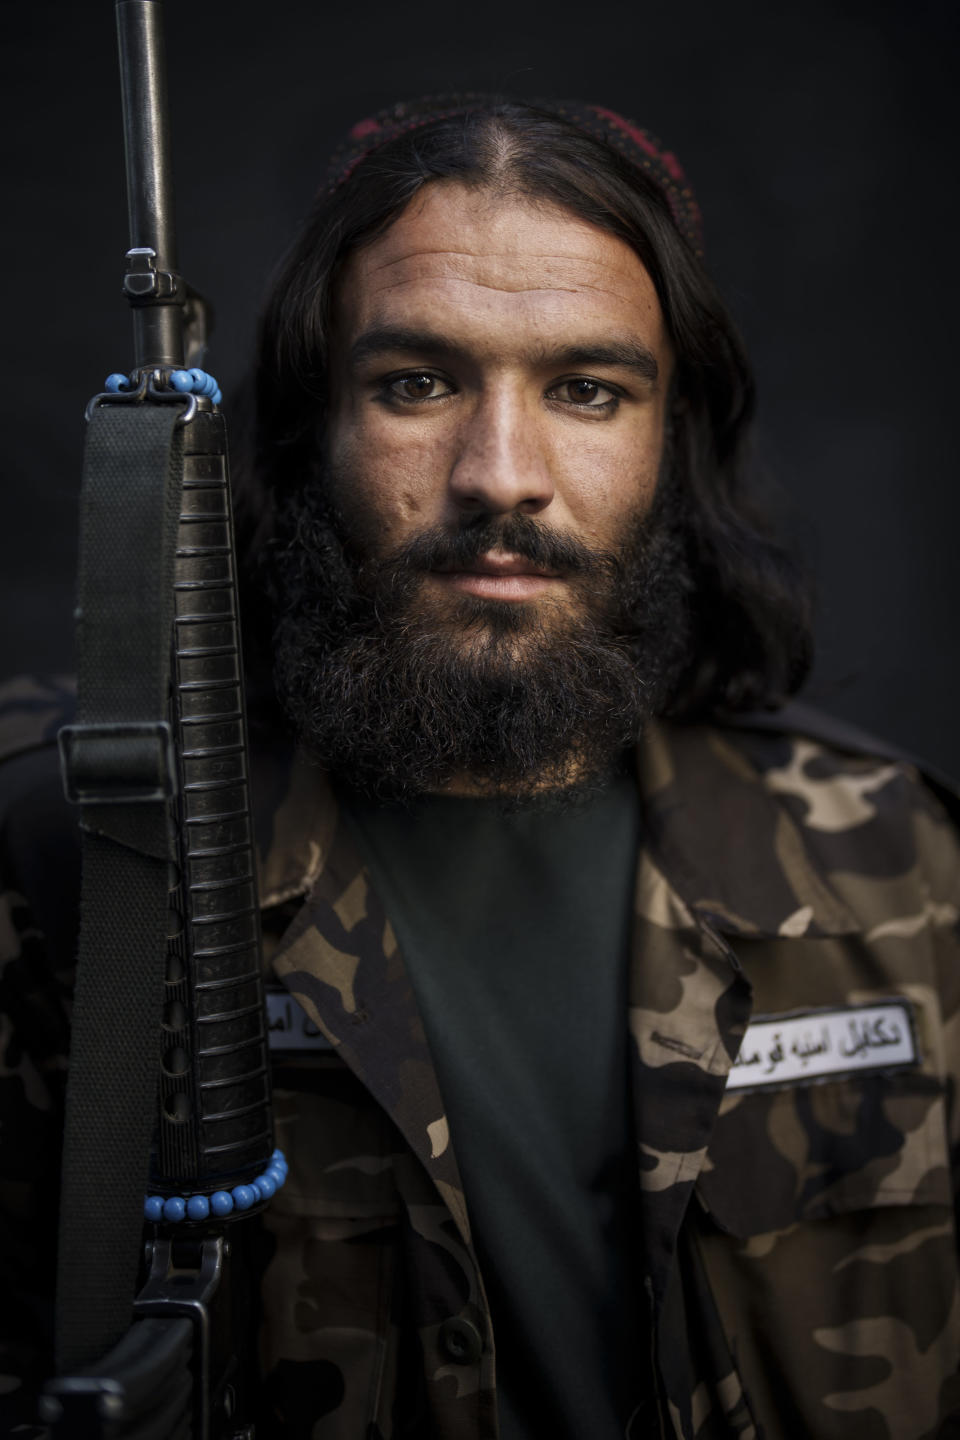 Taliban fighter Hizbullah Fath, 25, poses for a photo at a police station in Kabul, Afghanistan, Saturday, Sept. 18, 2021. Fath spent 3 years in jail and has been with the Taliban for 8 years. (AP Photo/Felipe Dana)